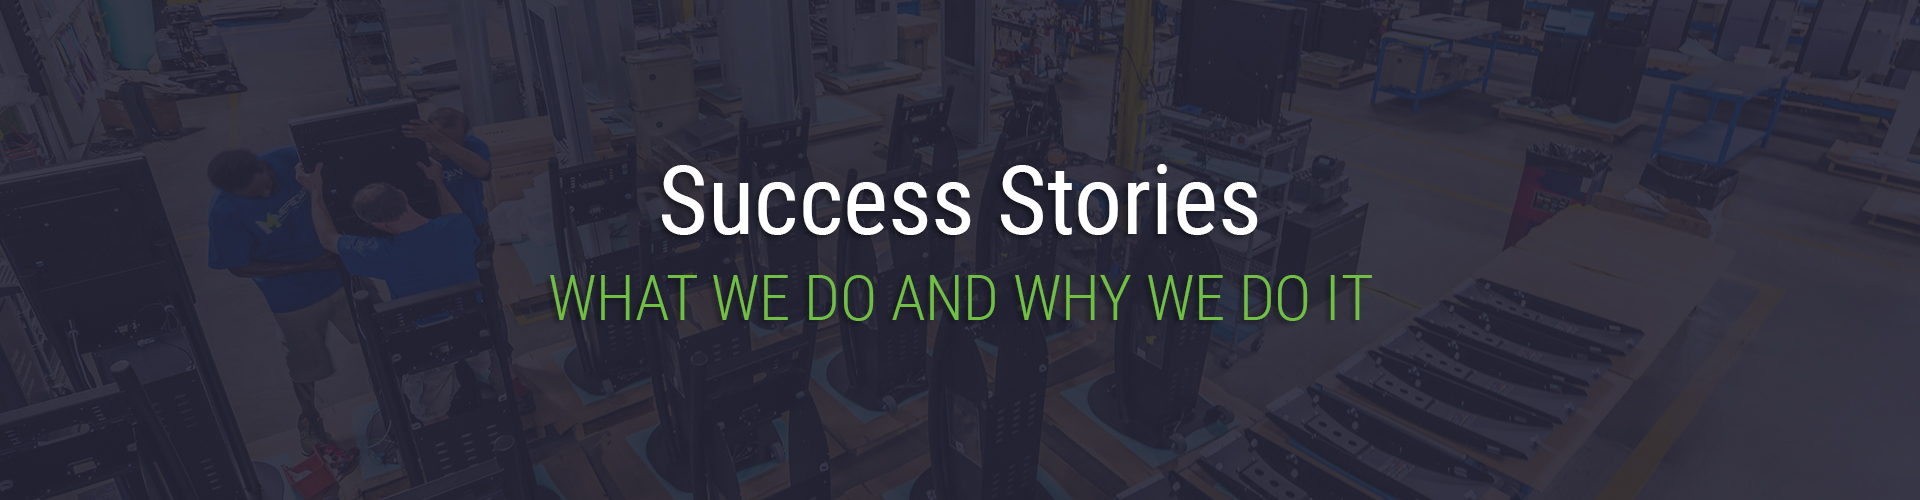 Success Stories Header